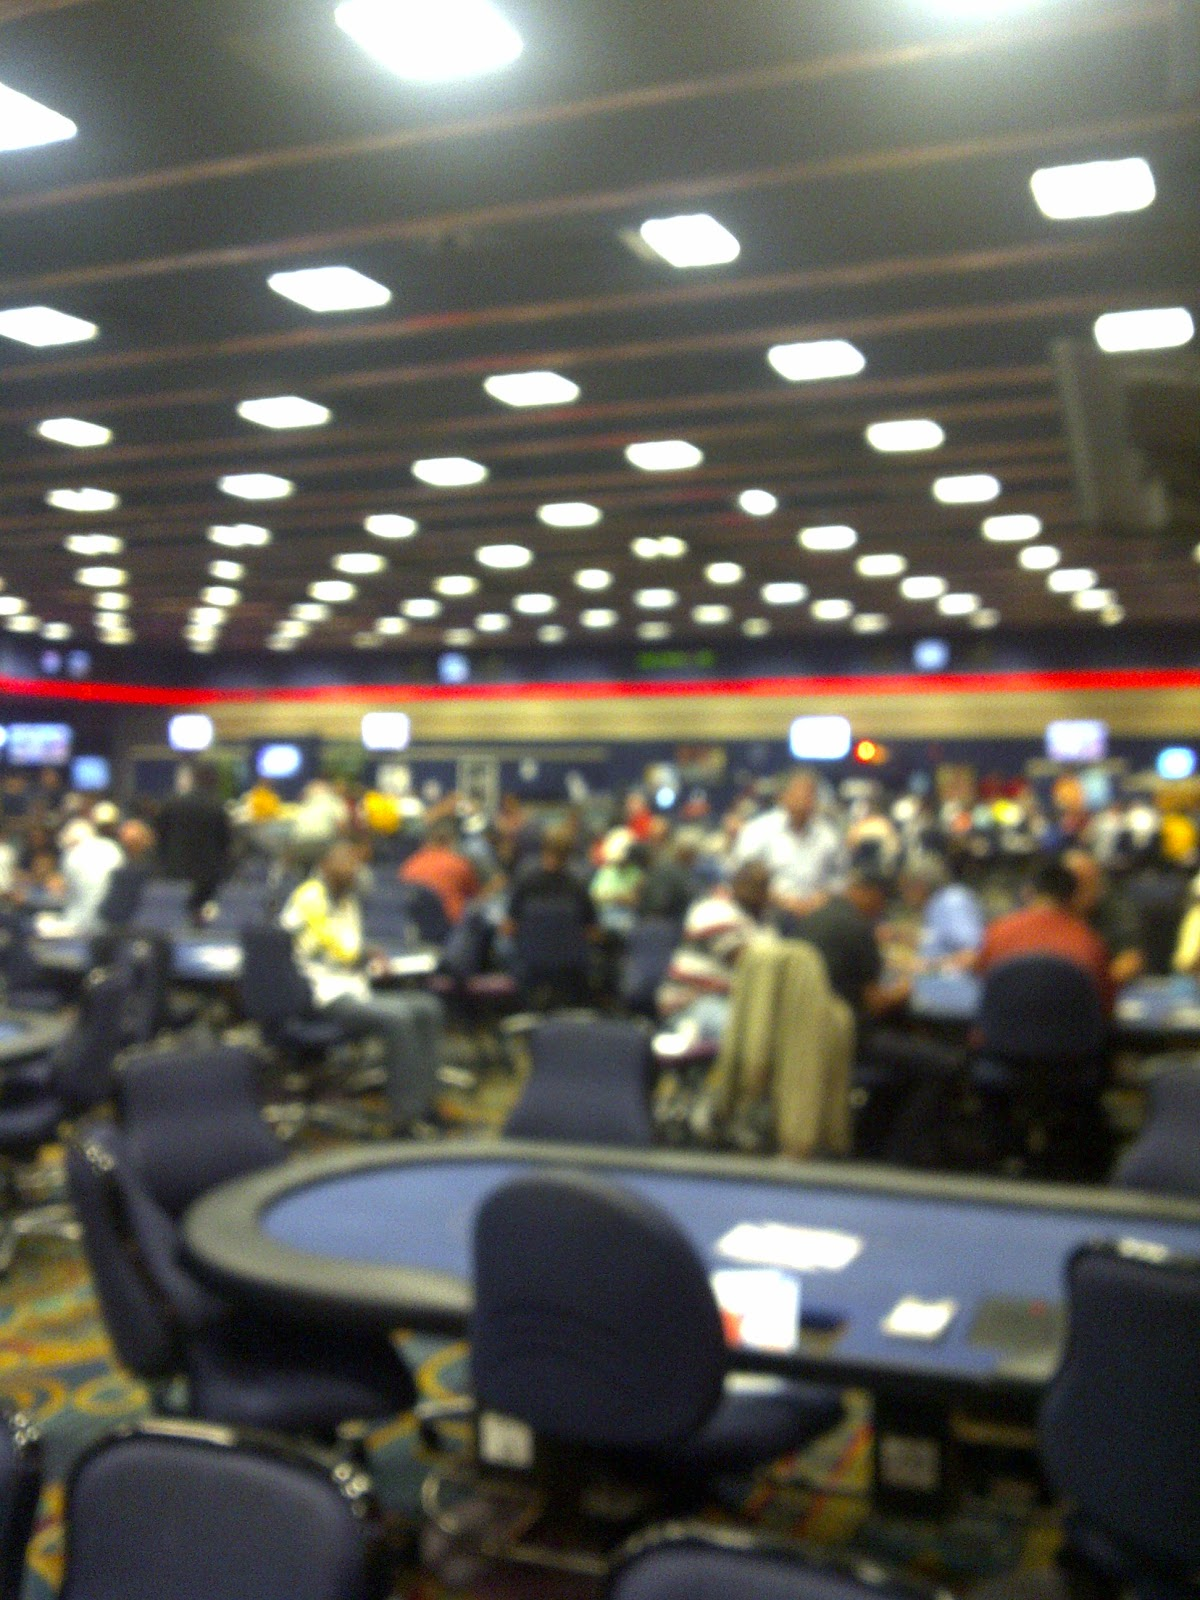 Craps at hollywood park